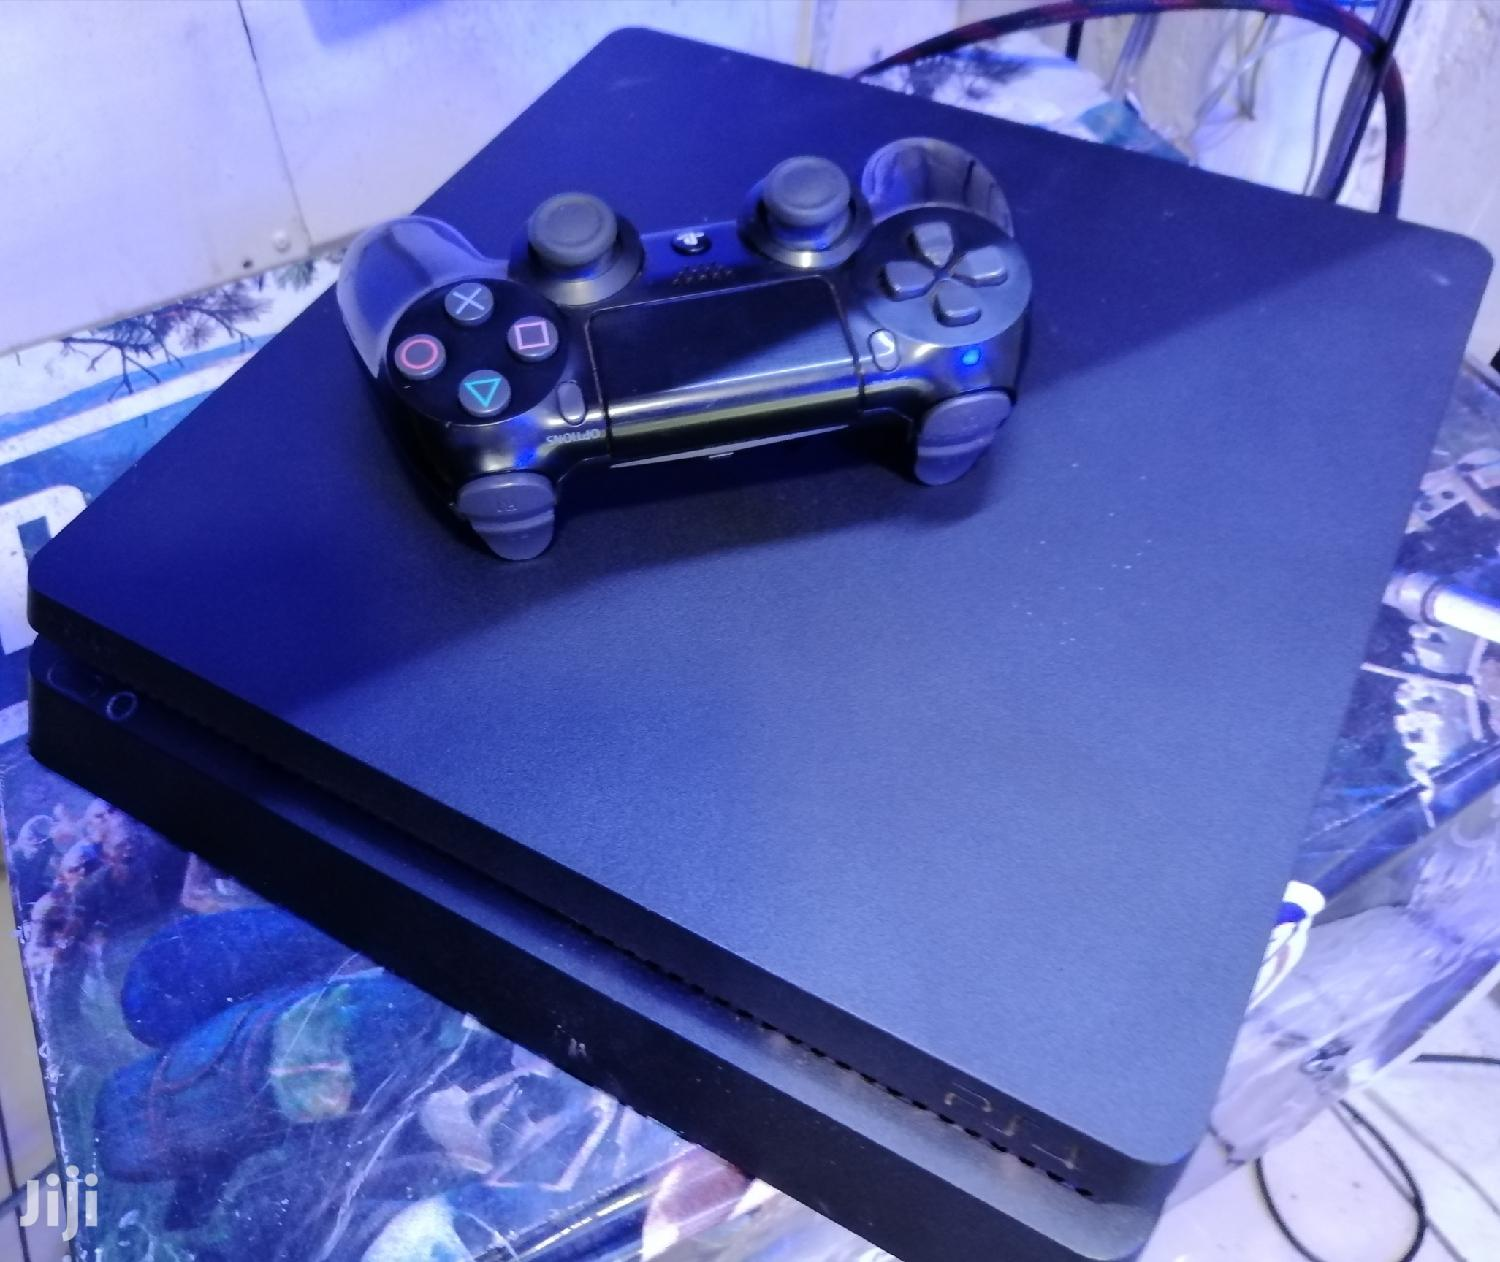 Almost New Playstation 4 Slim